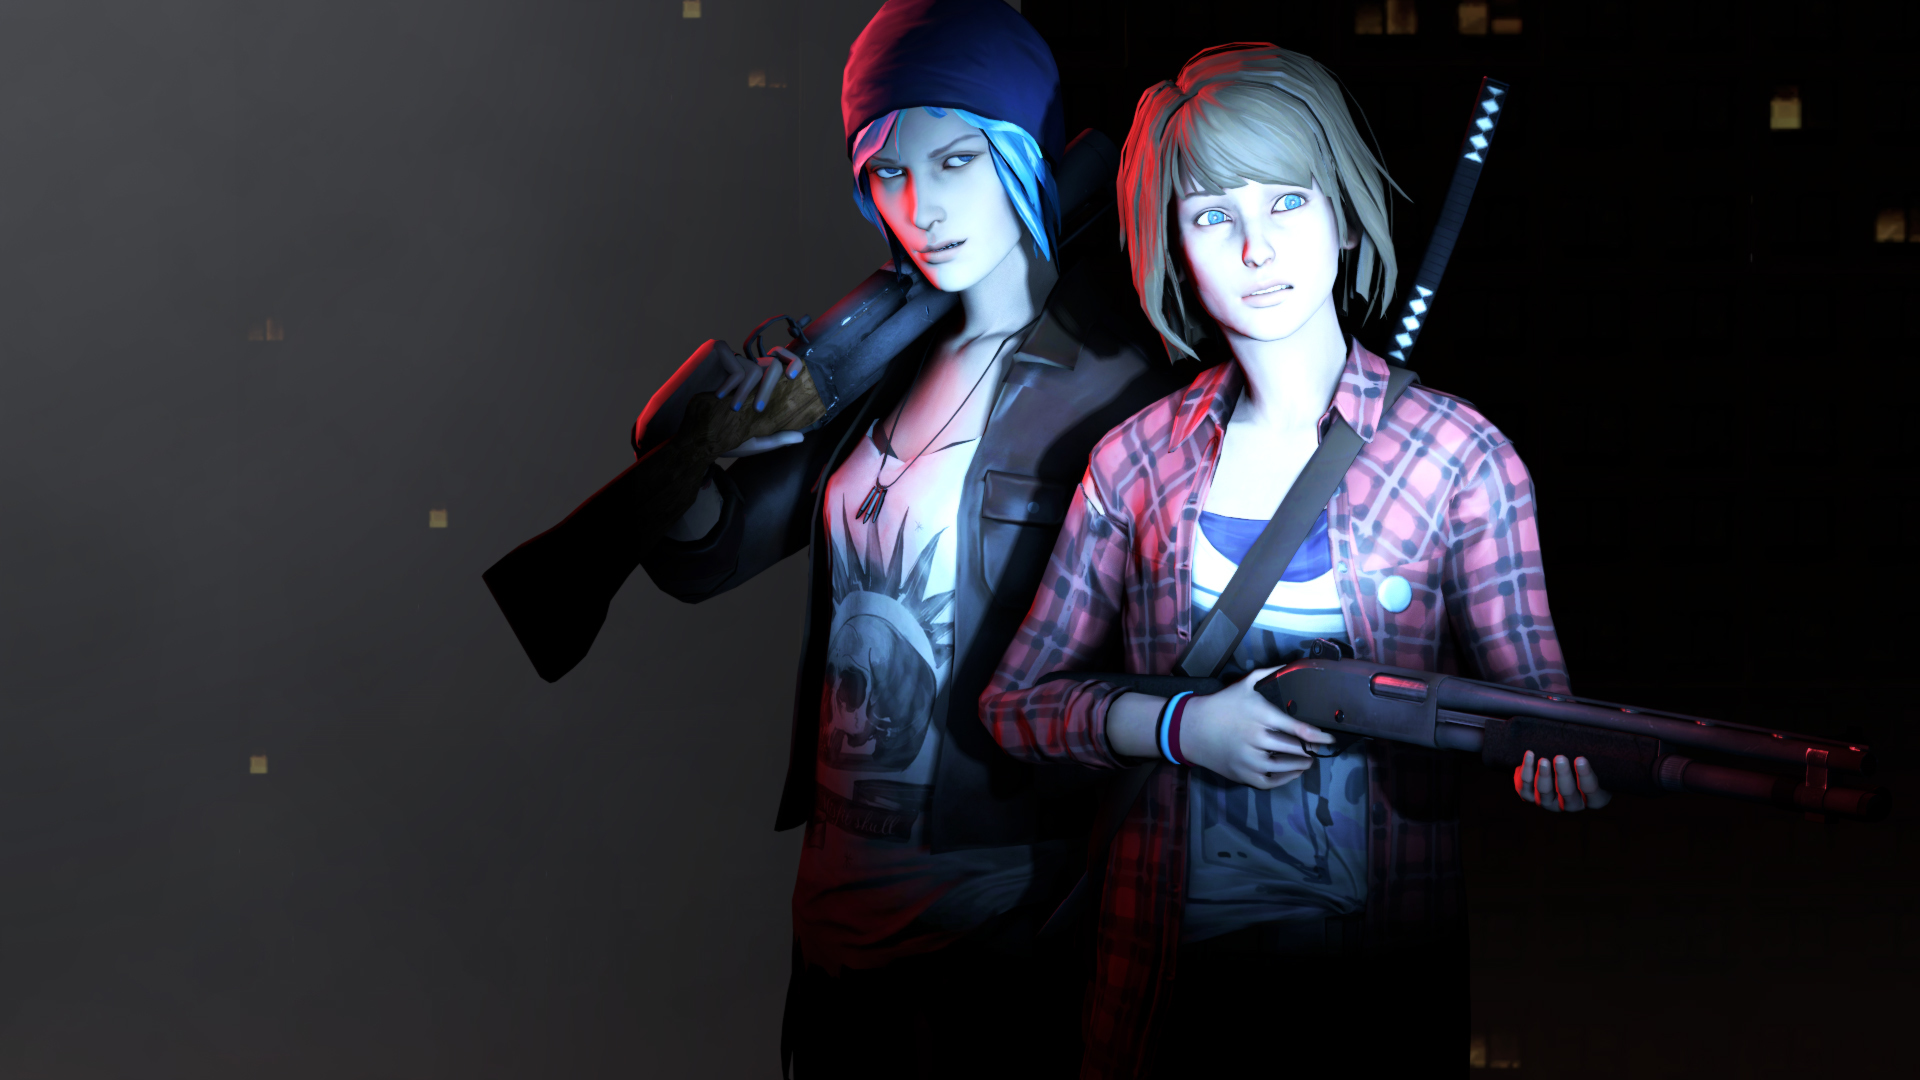 Life Is Strange Hd Wallpaper Background Image 1920x1080 Id 688629 Wallpaper Abyss